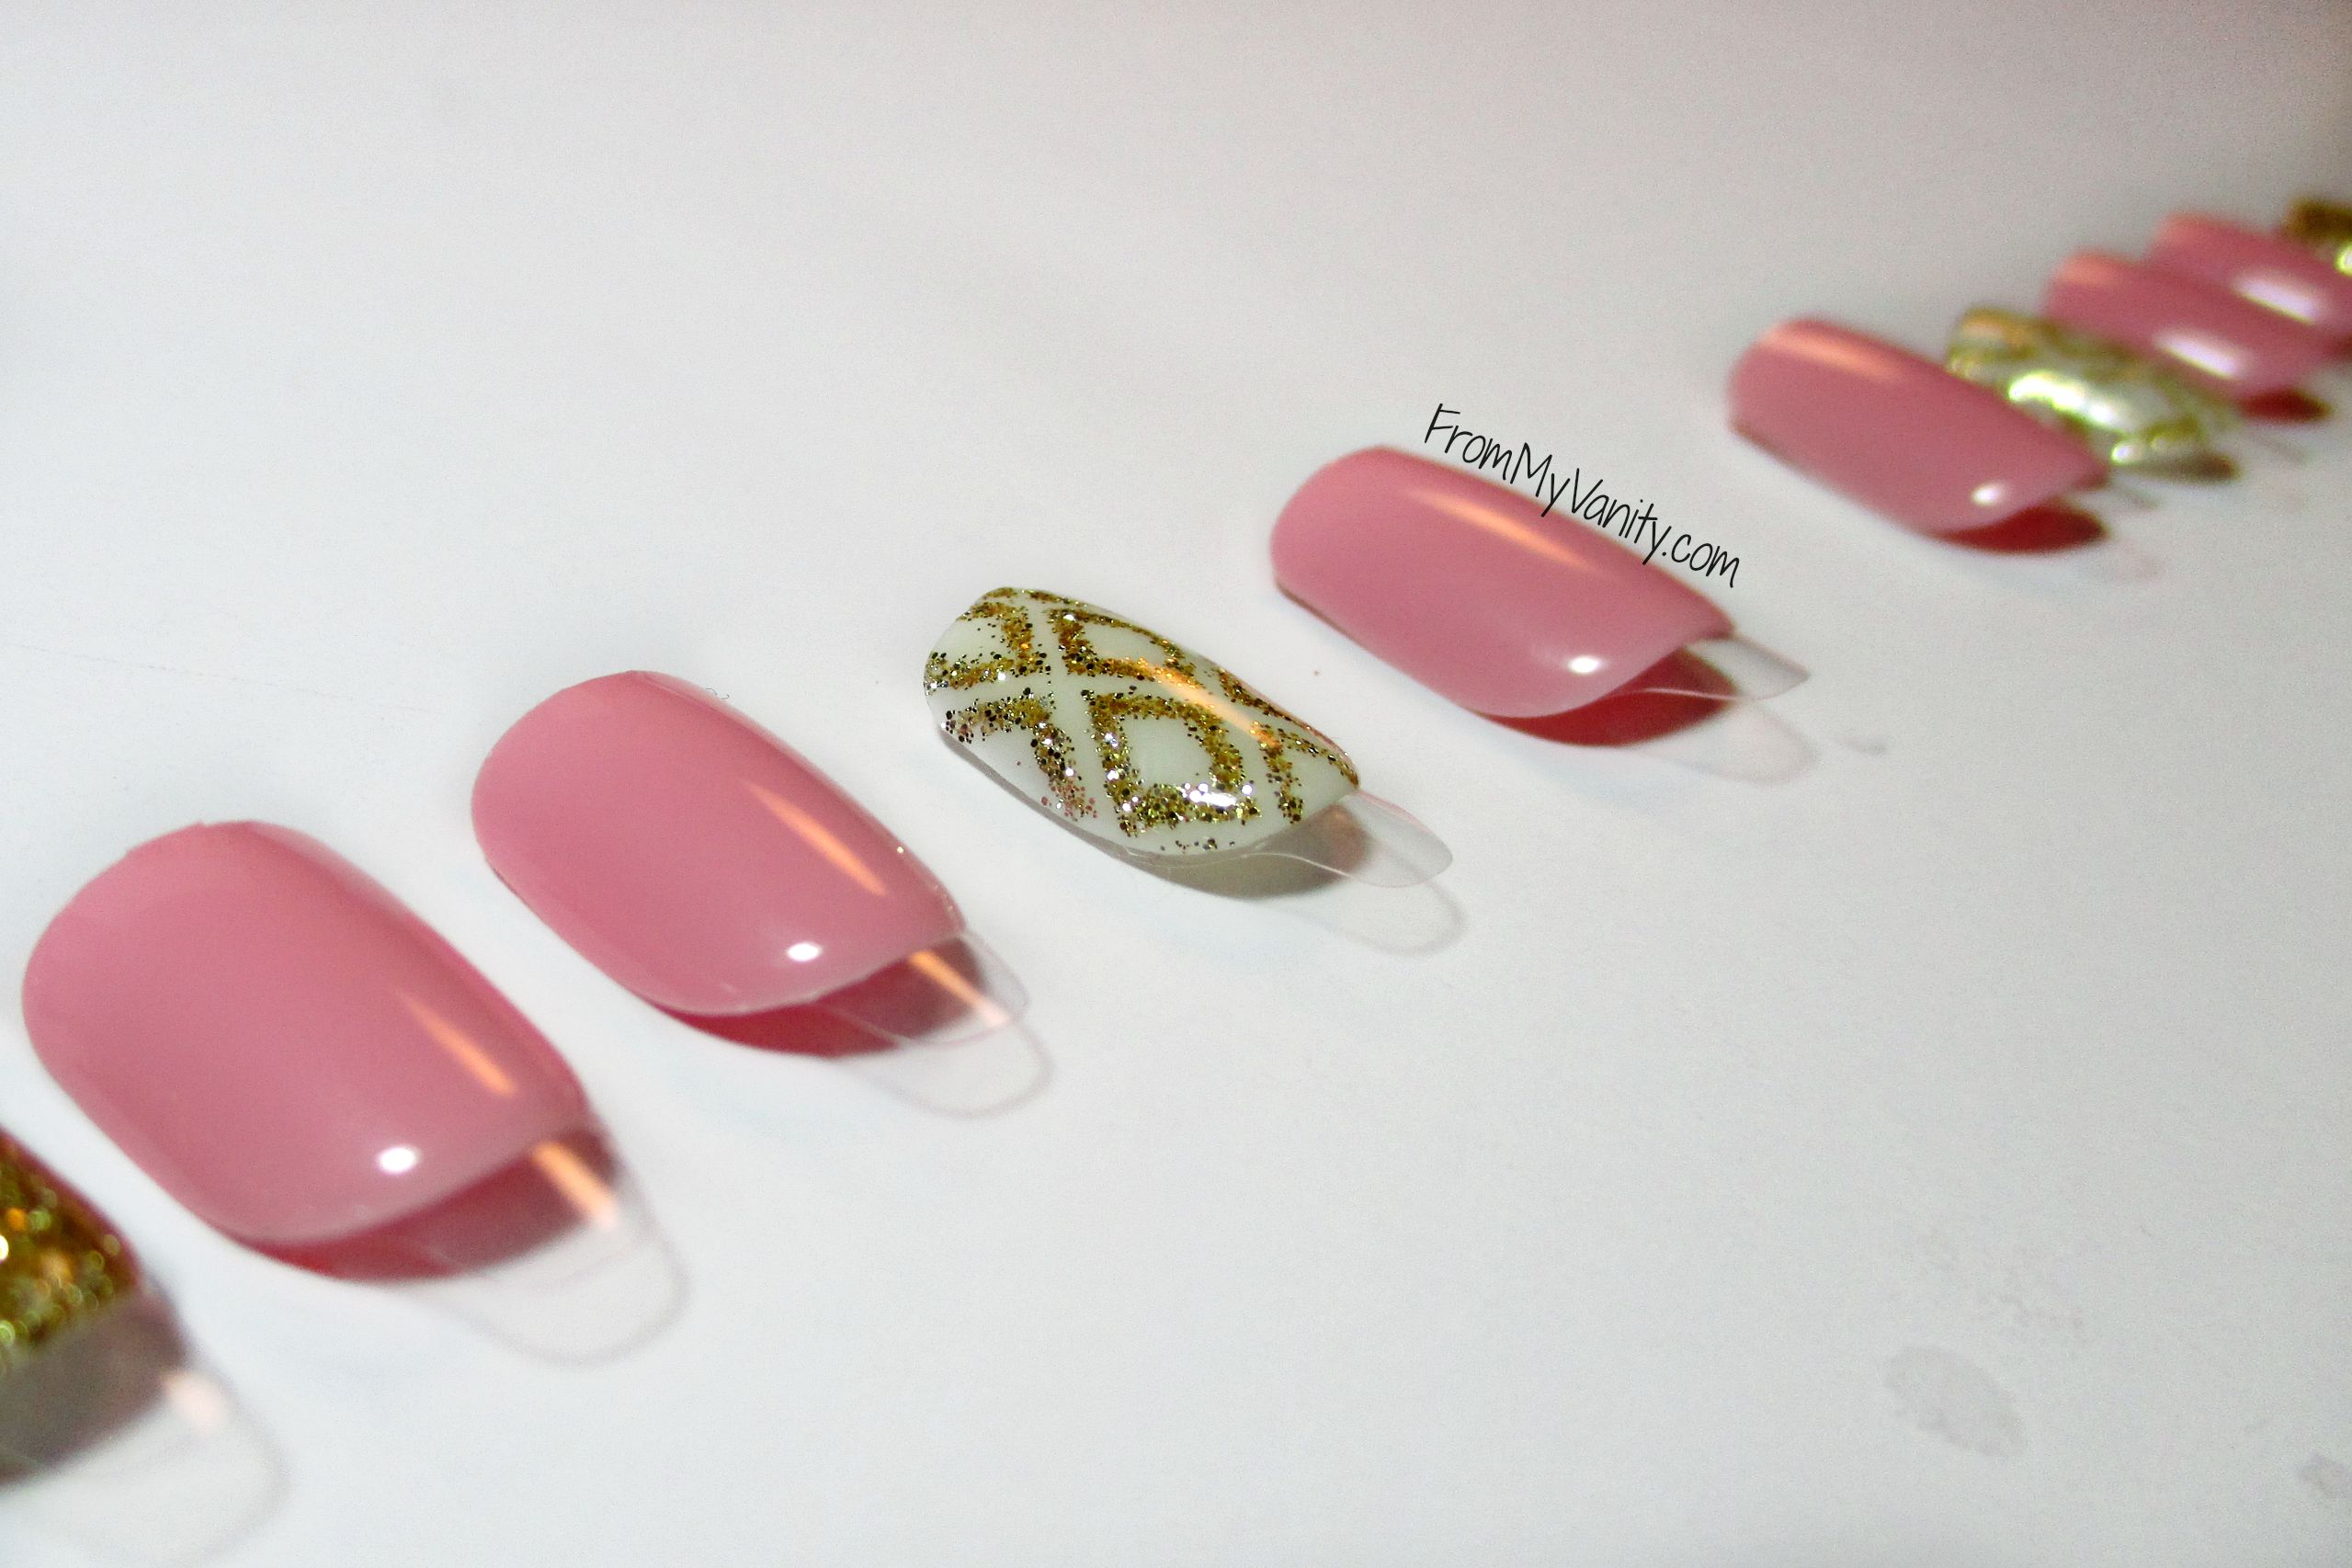 imPRESS Press-On Manicure // nails // From My Vanity